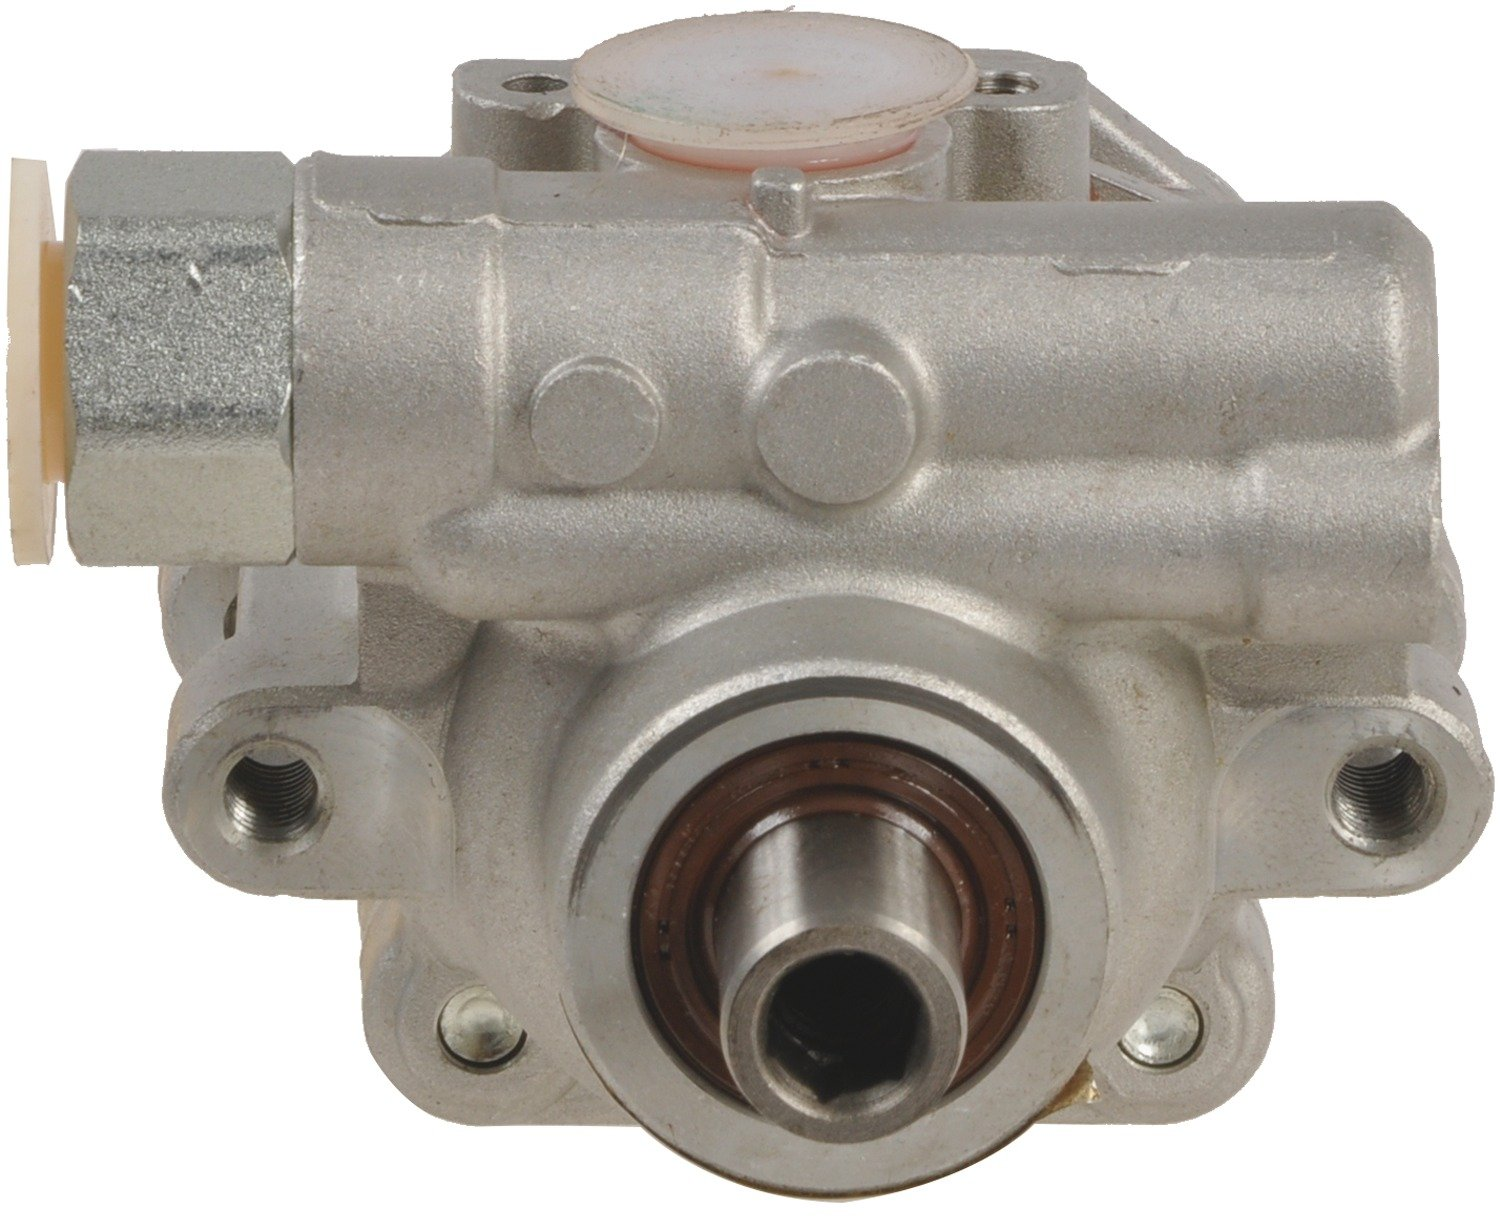 Cardone Select 96-5350 New Power Steering Pump without Reservoir